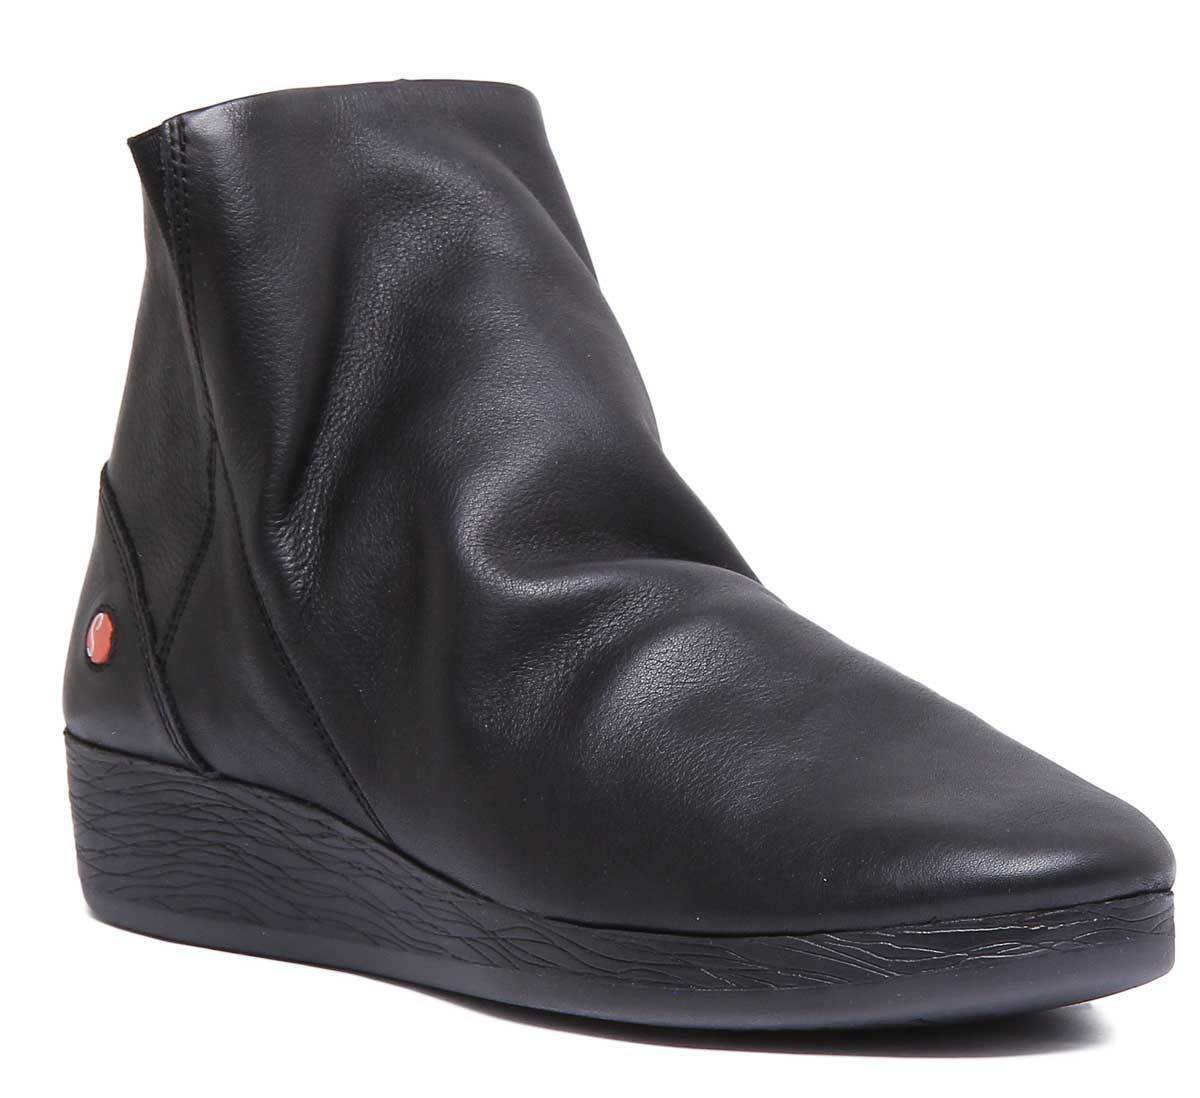 Softinos Ayo 411 Womens Womens Womens Soft Leather Black Ankle Boots UK Size 3 - 8 a34fd8